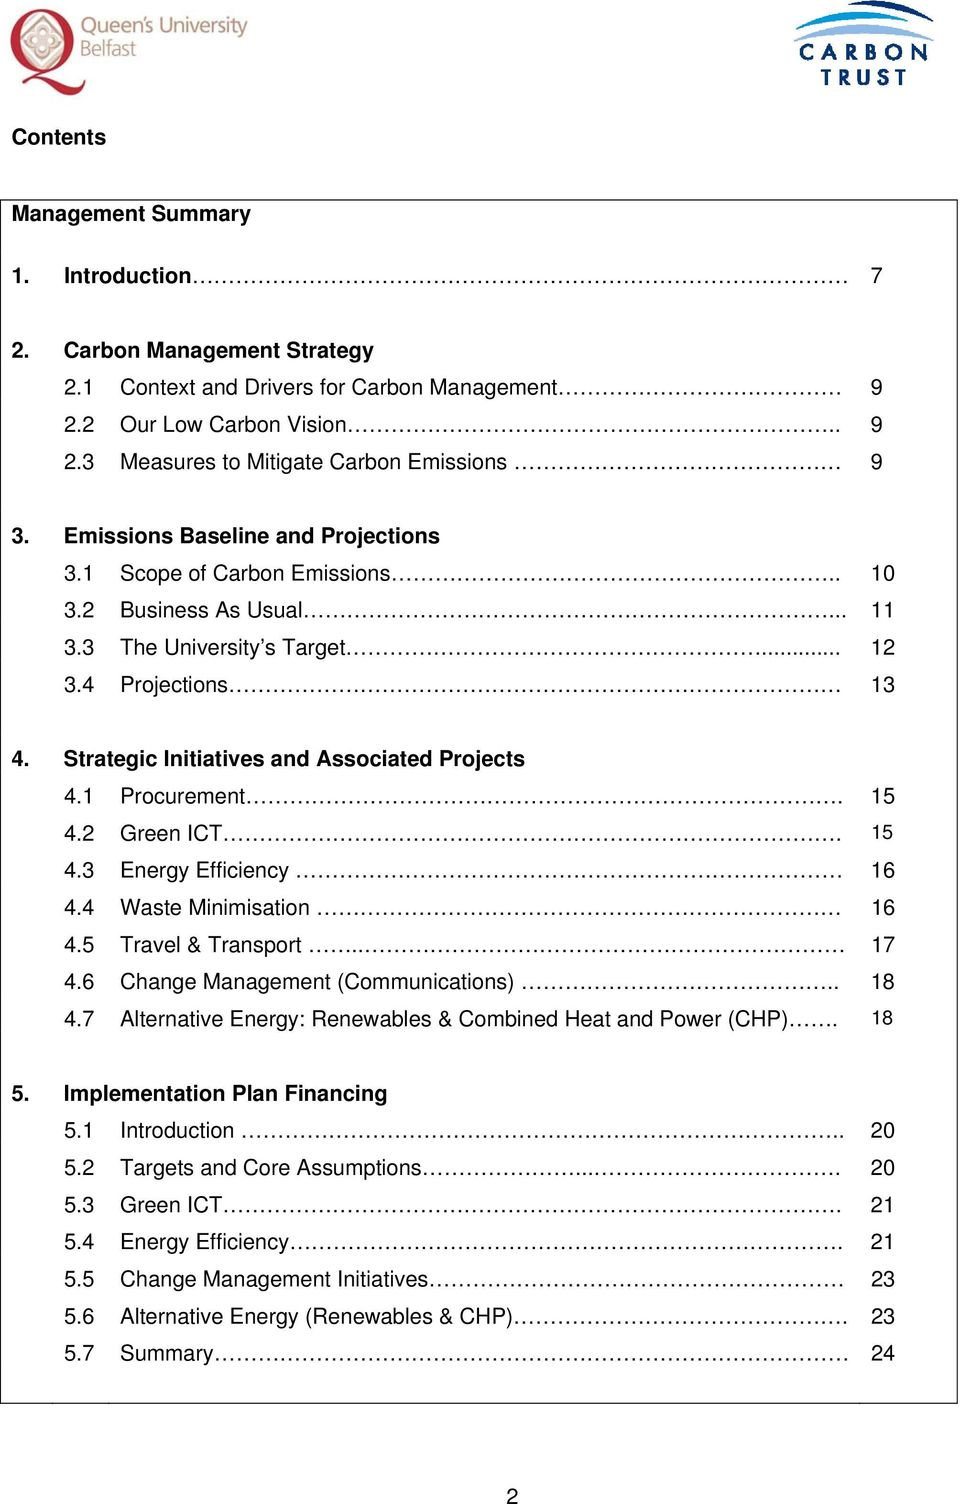 Strategic Initiatives and Associated Projects 4.1 Procurement. 15 4.2 Green ICT. 15 4.3 Energy Efficiency 16 4.4 4.5 Waste Minimisation Travel & Transport.. 16 17 4.